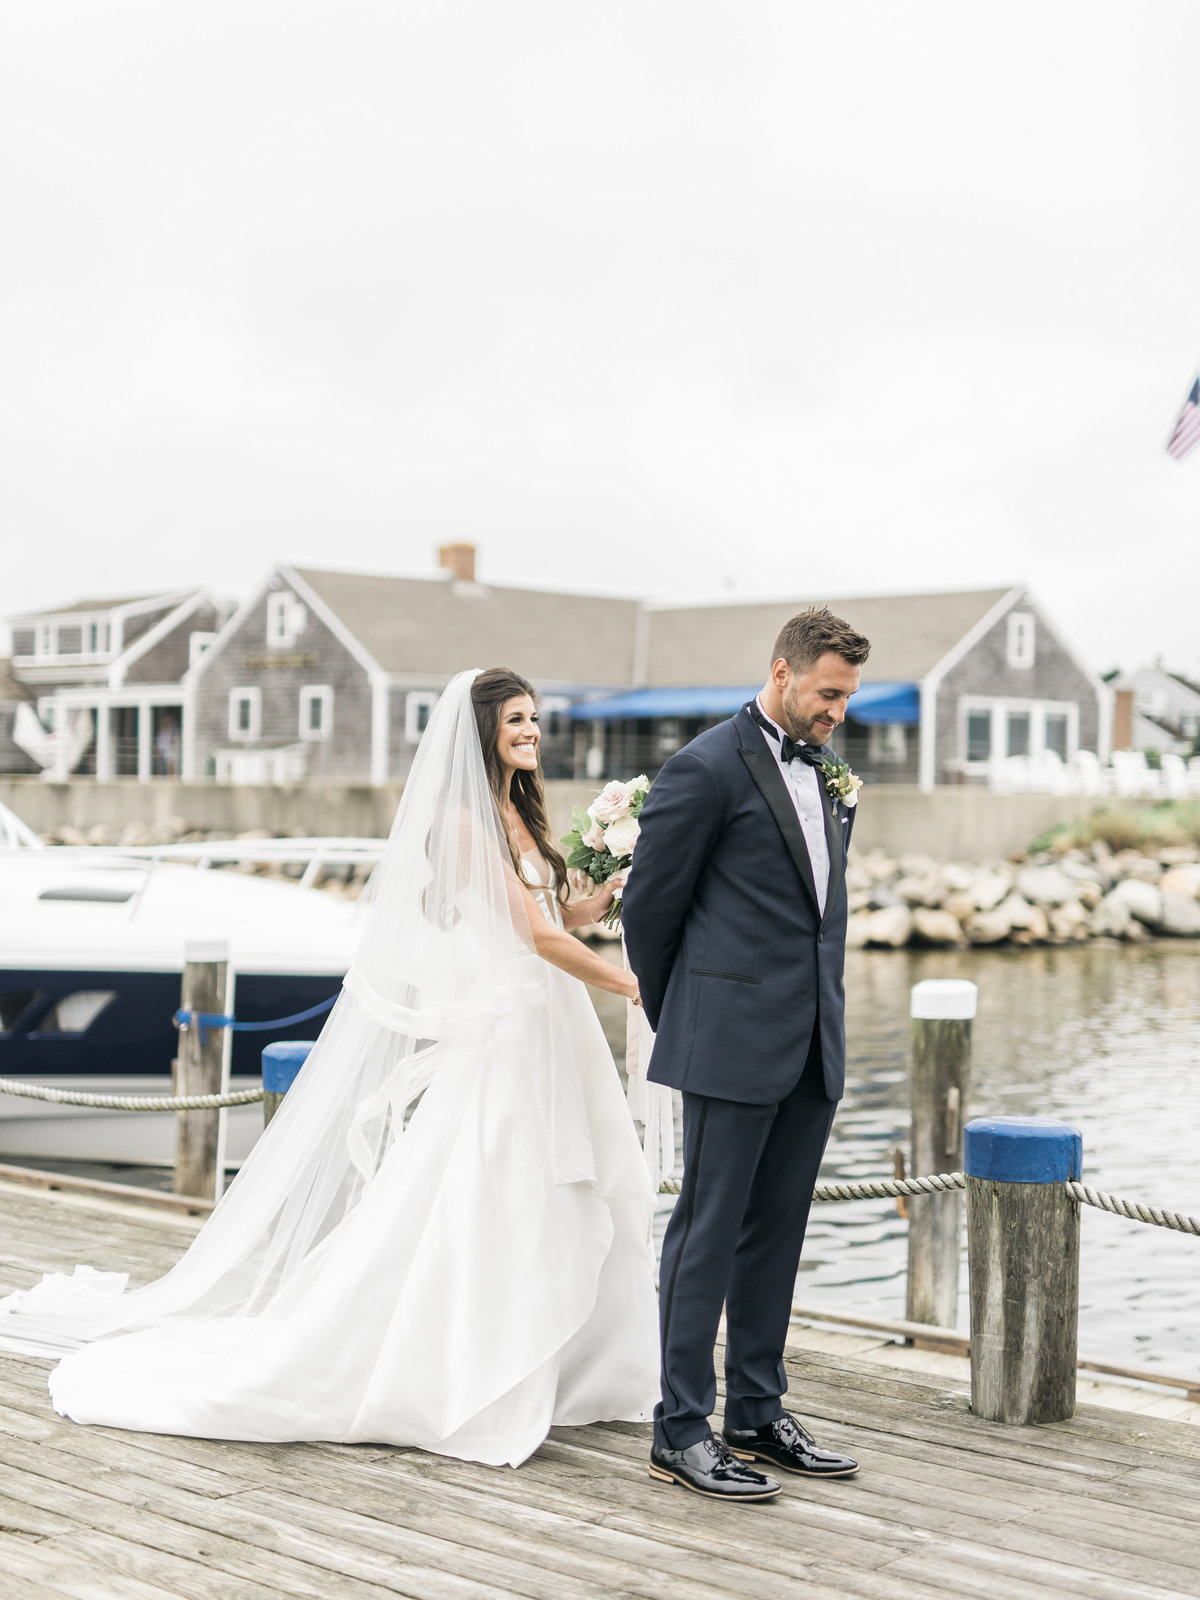 unique wedding planner on Cape Cod at unique coastal wedding venues